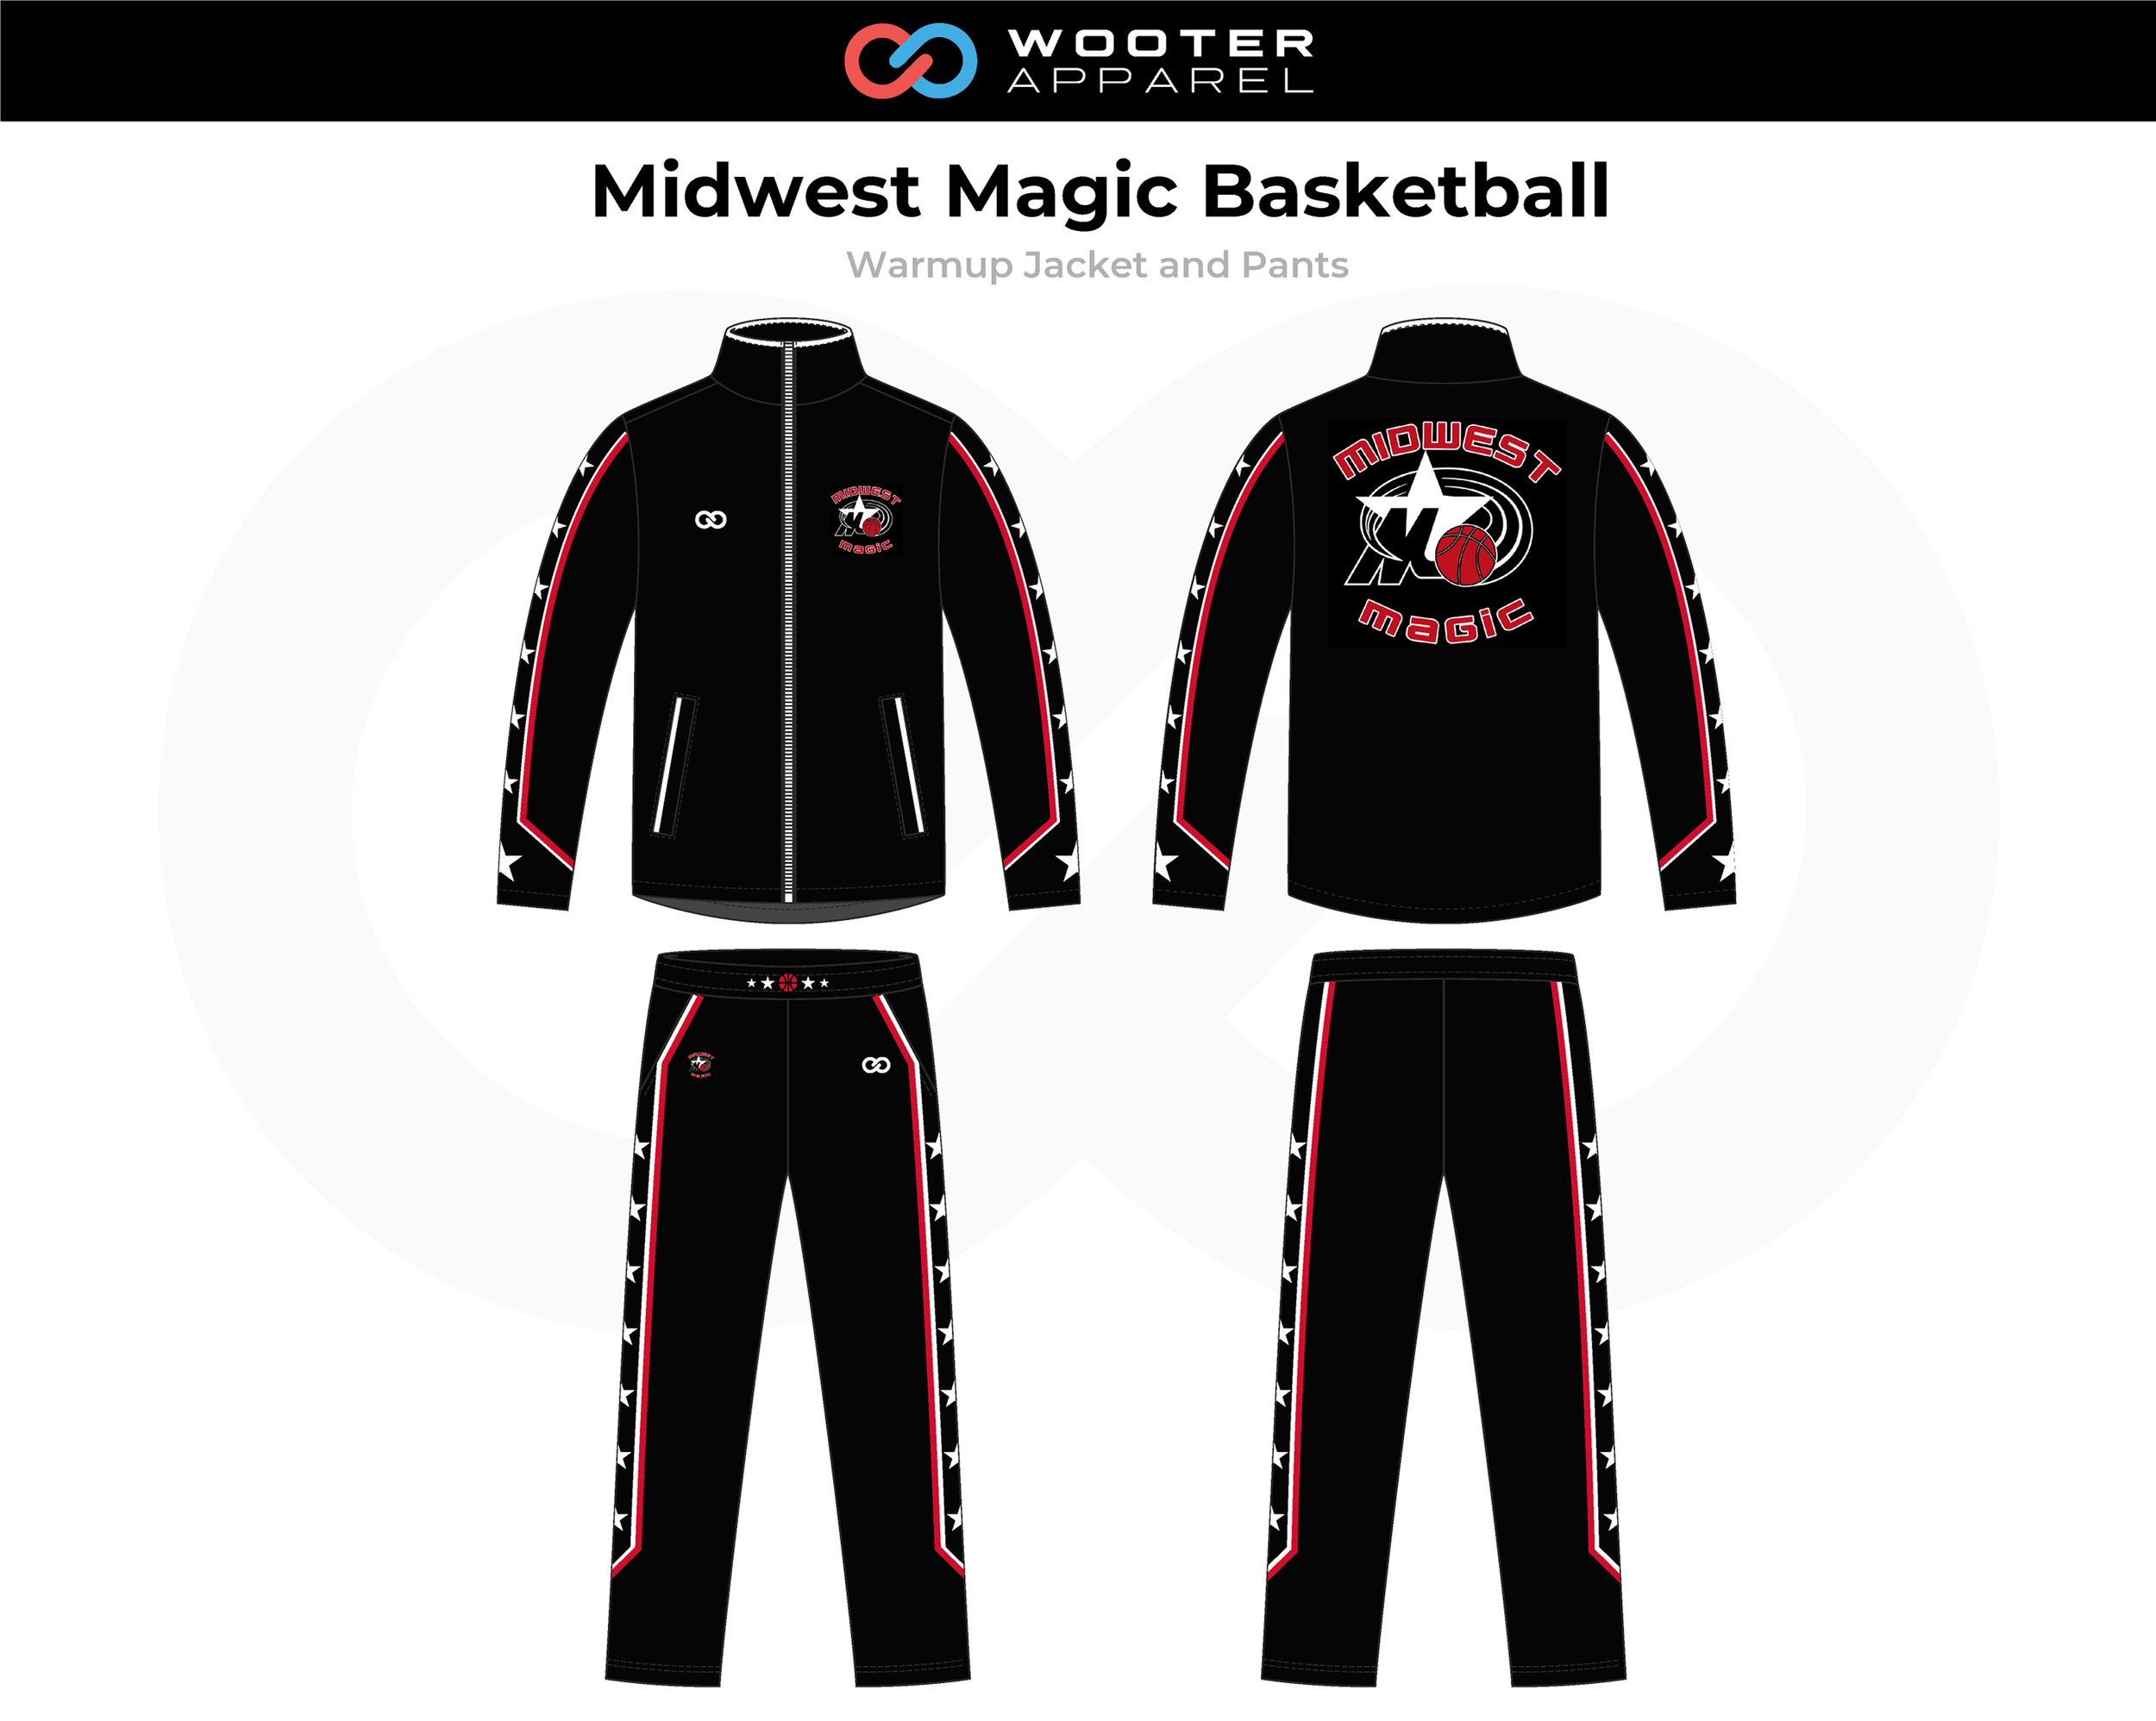 MIDWEST MAGIC Black Red White Basketball Warmup Jacket and Pants